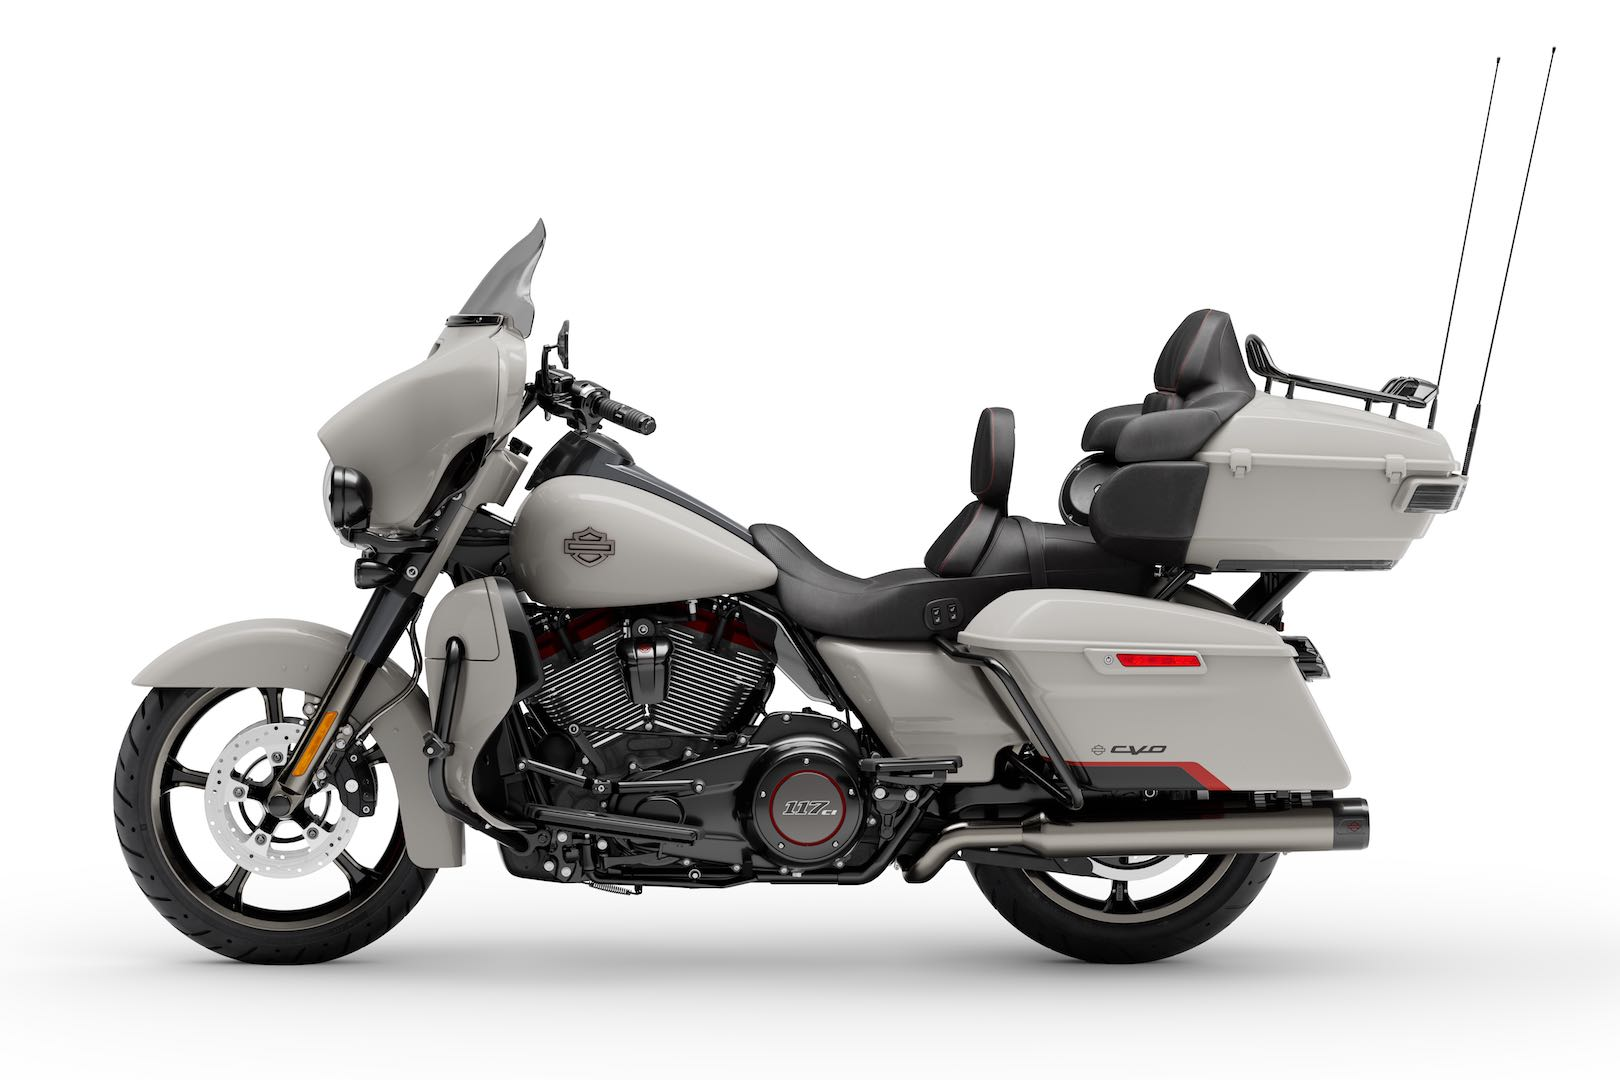 2020 Harley-Davidson CVO Limited Buyer's Guide: Specs & Prices